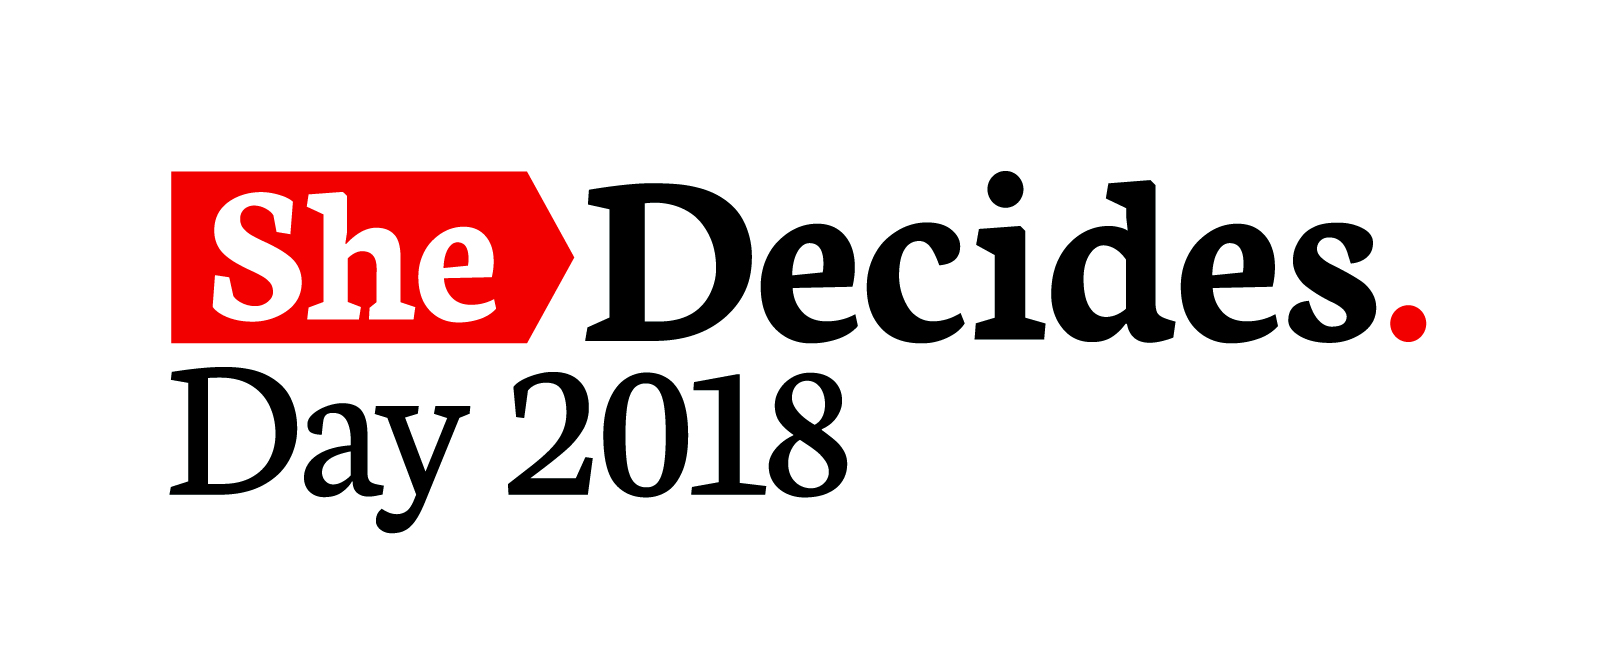 she decides day 2018 life by asha singh